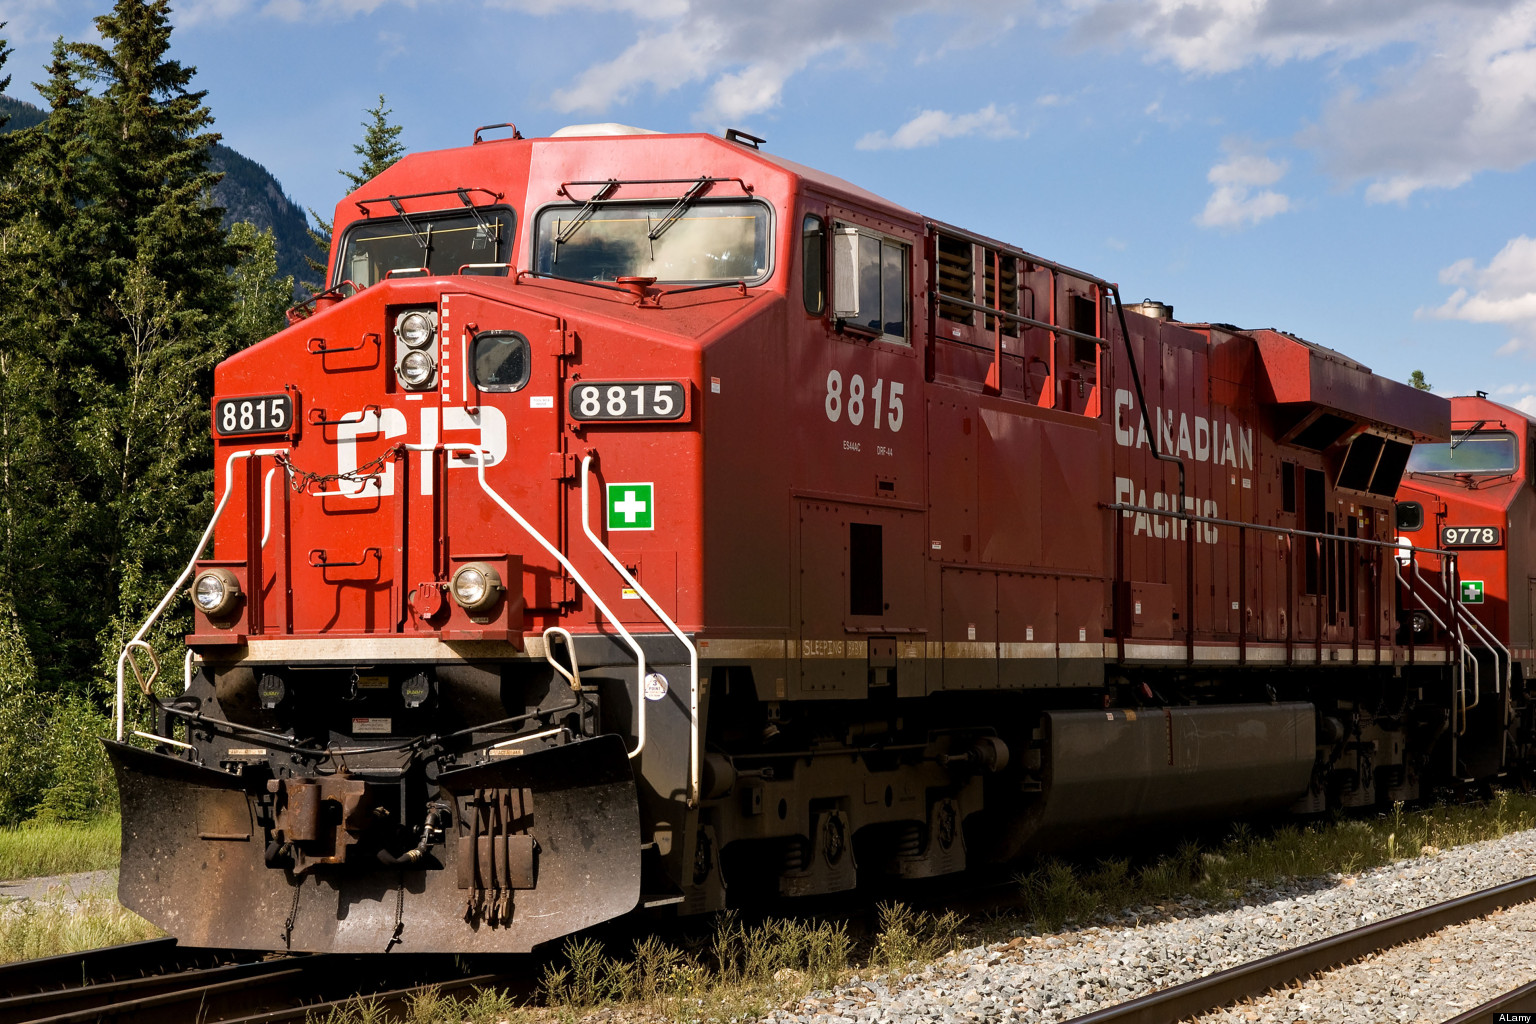 A Canadian Pacific AC44 locomotive standing in Banff Station.